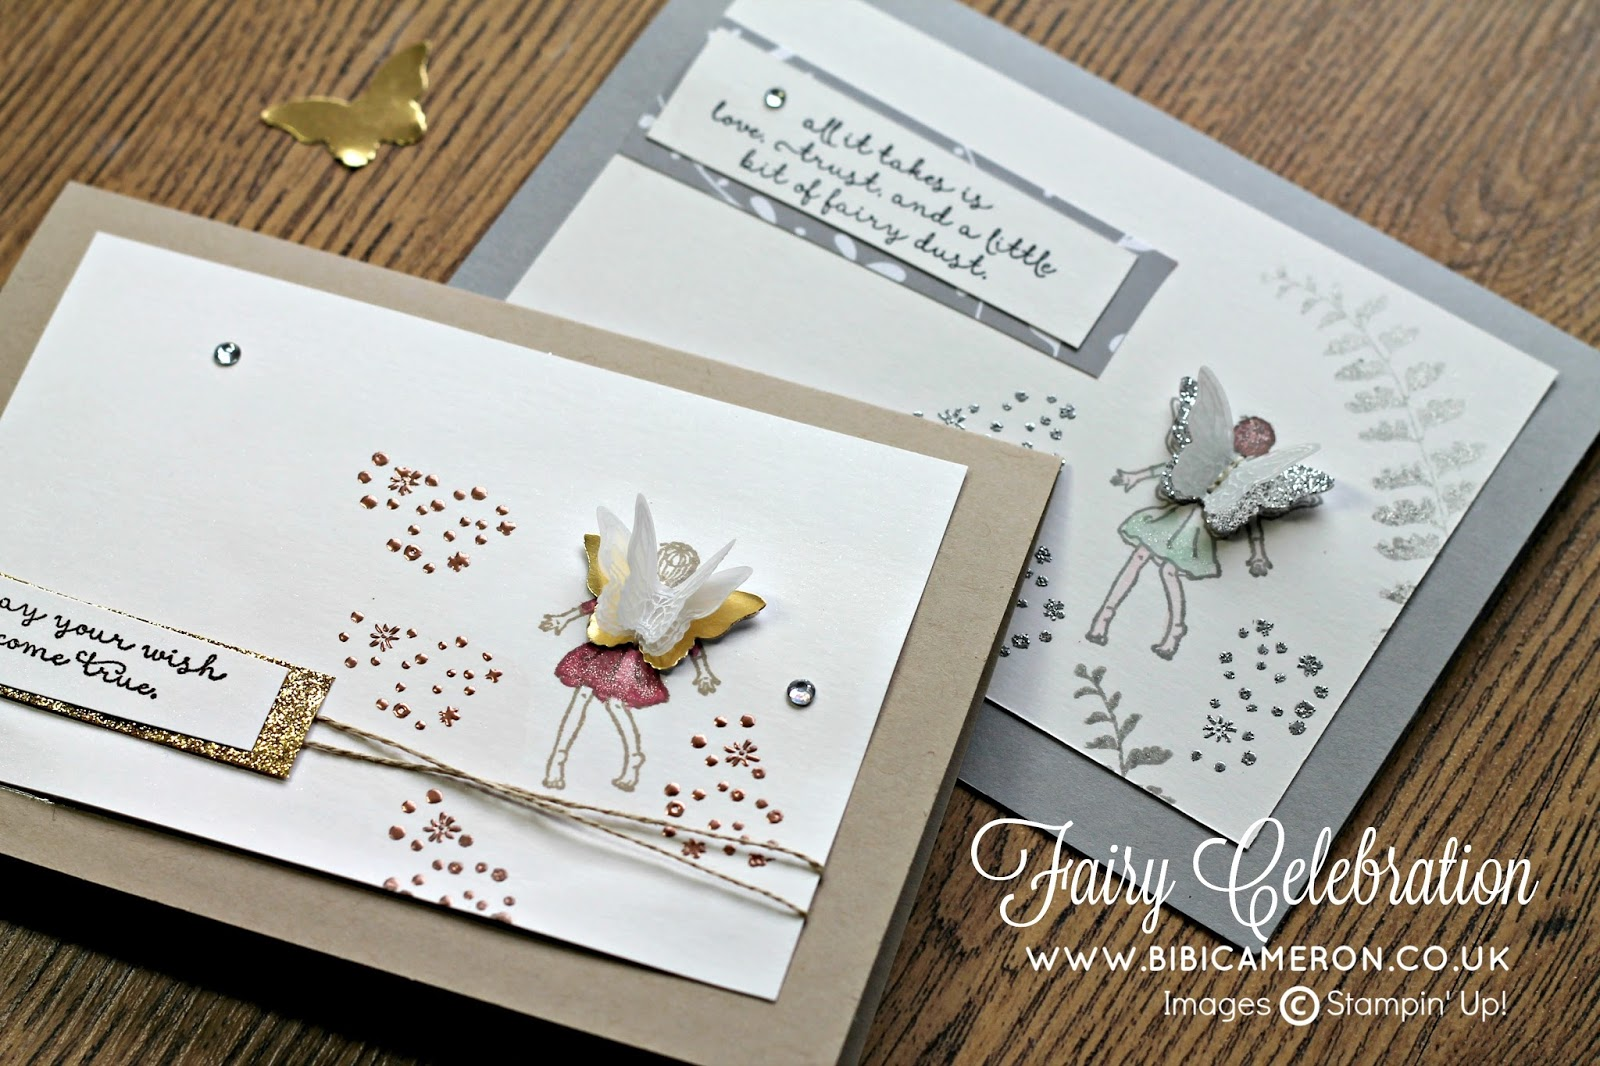 fairy celebration by stampin up encouragement cards for gdp044